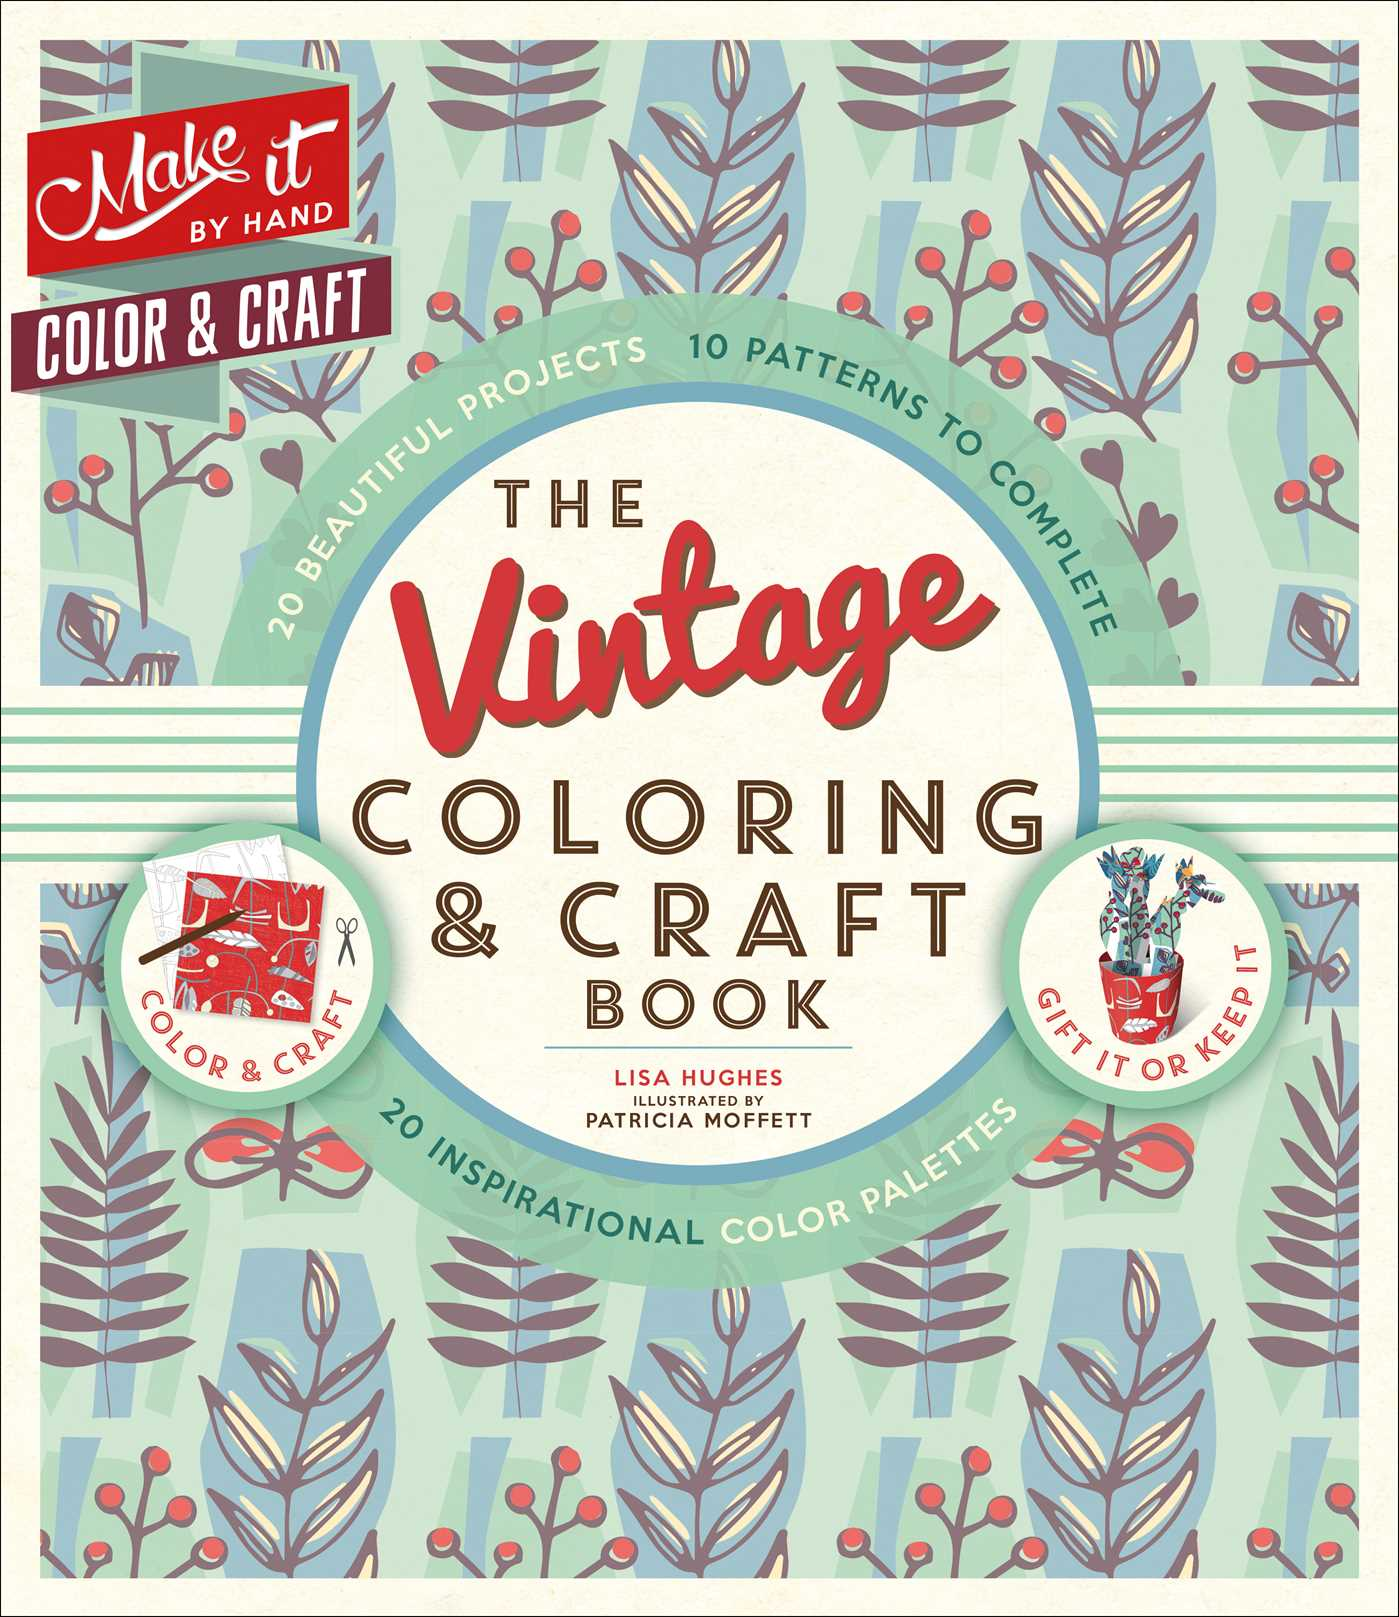 The vintage coloring craft book 9781501158124 hr